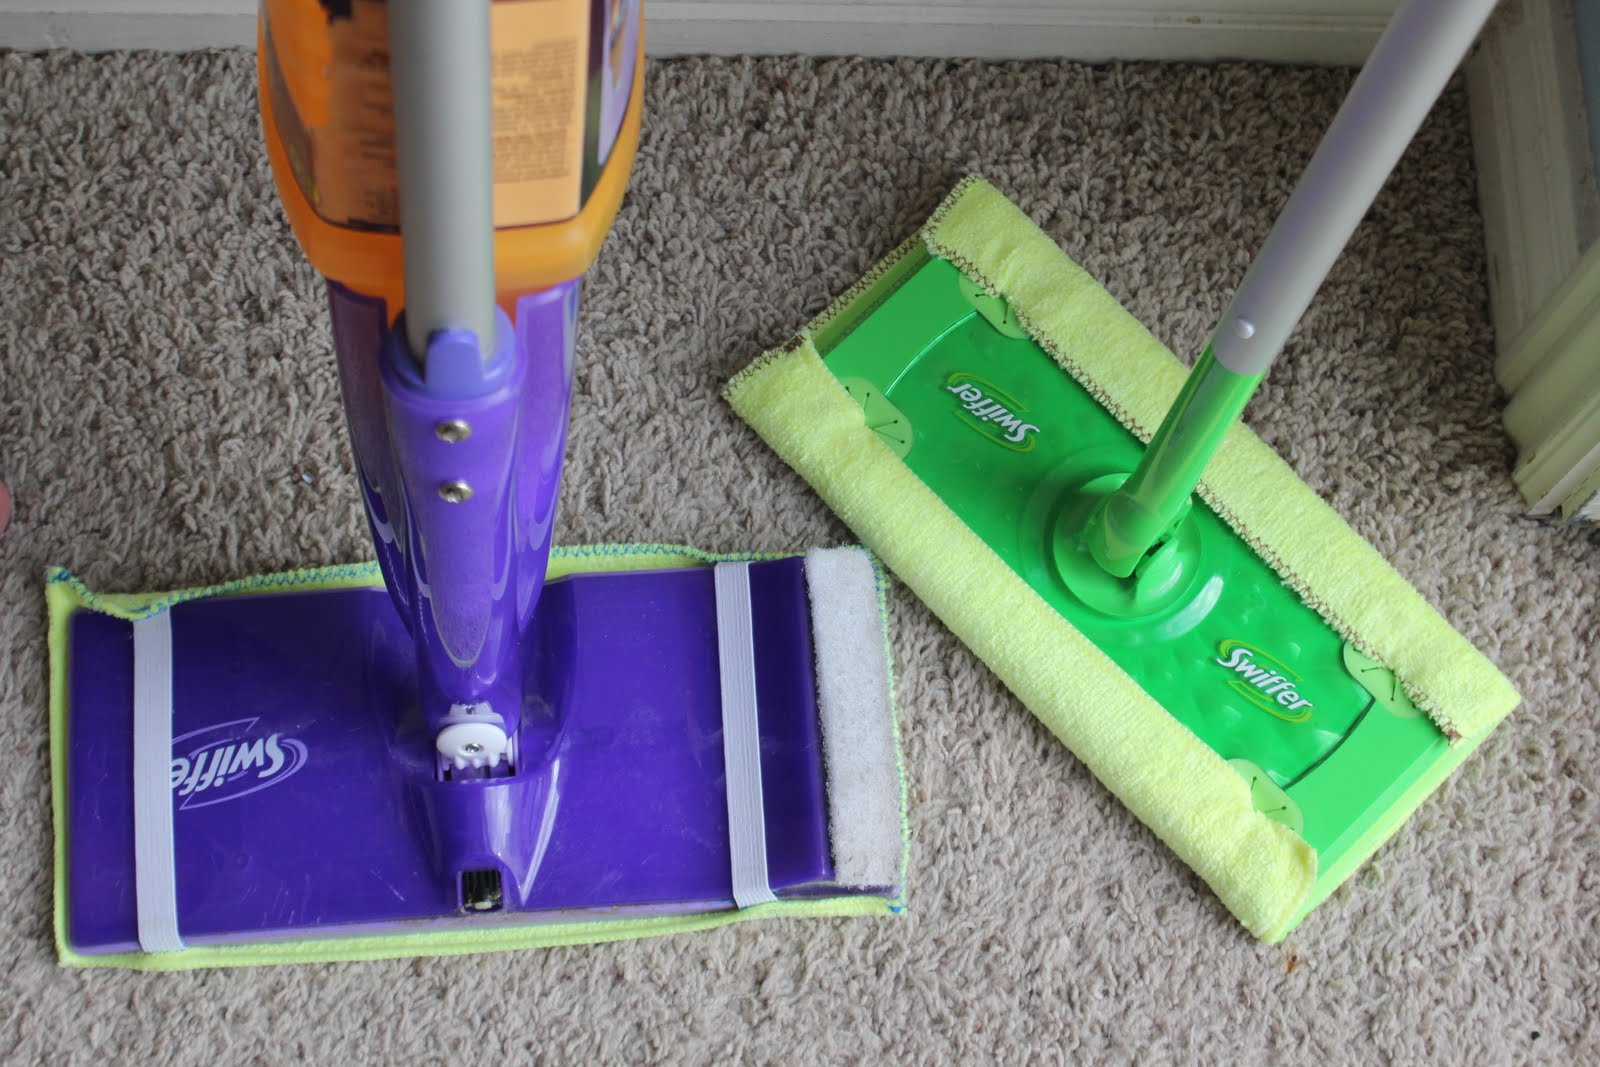 How to Make Your Own (Reusable!) Swiffer Pads| Swiffer Pads, Swiffer Pads DIY, Swiffer Wetjet Refill DIY, Swifer Pads Wetjet DIY, Swiffer Pads Crochet Pattern, Swiffer Pads DIY How to Make, Swiffer Pads DIY Free Pattern, DIY Cleaning, DIY Cleaning Products #SwifferPadsDIY #SwifferWetjetRefillDIY #Cleaning #DIYCleaningProducts